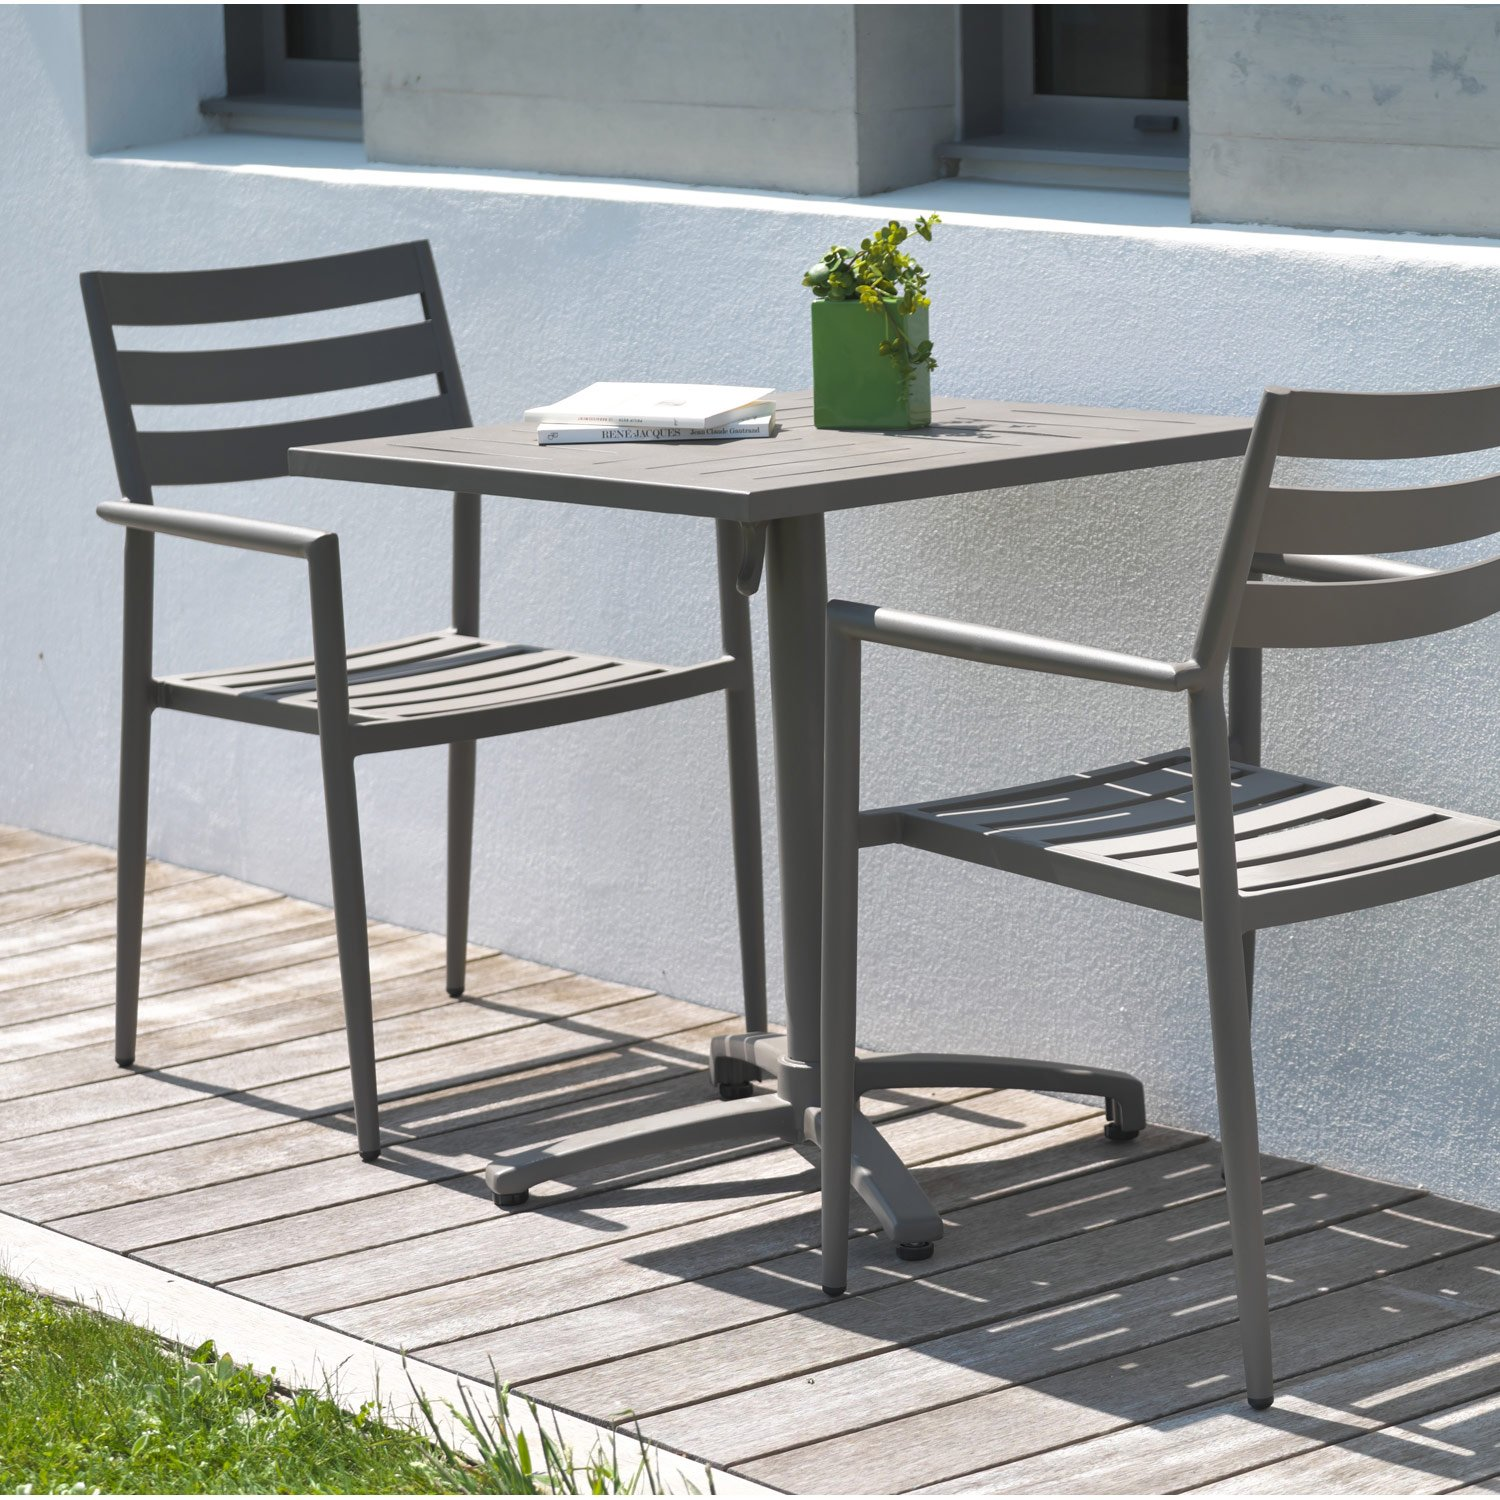 table et chaise de jardin 2 personnes royal sofa id e de canap et meuble maison. Black Bedroom Furniture Sets. Home Design Ideas